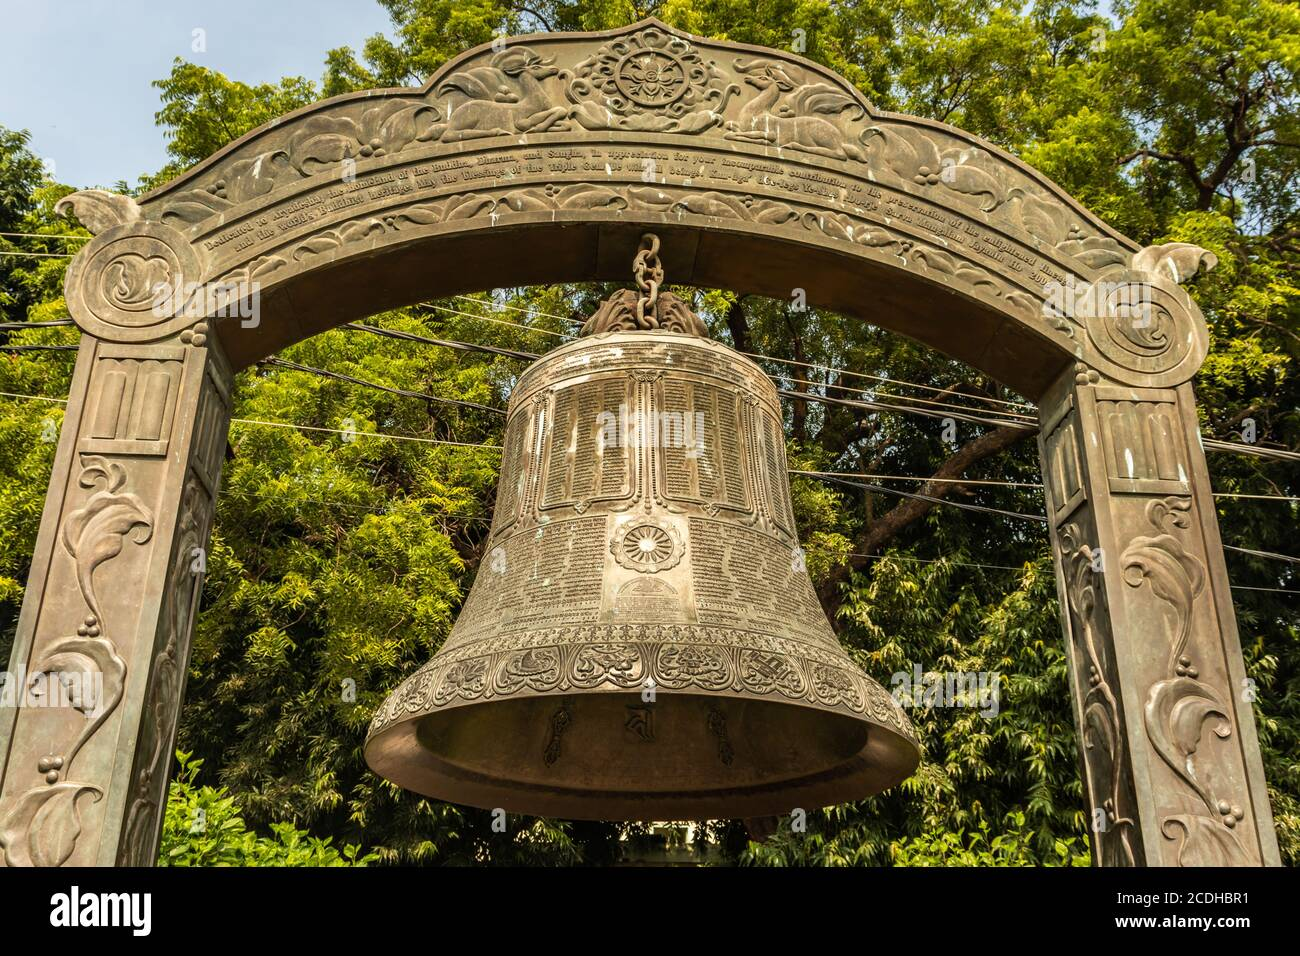 world peace bell from different unique angles close up shots image is taken at nalnda bihar india. the details view of huge world peace bell which is Stock Photo